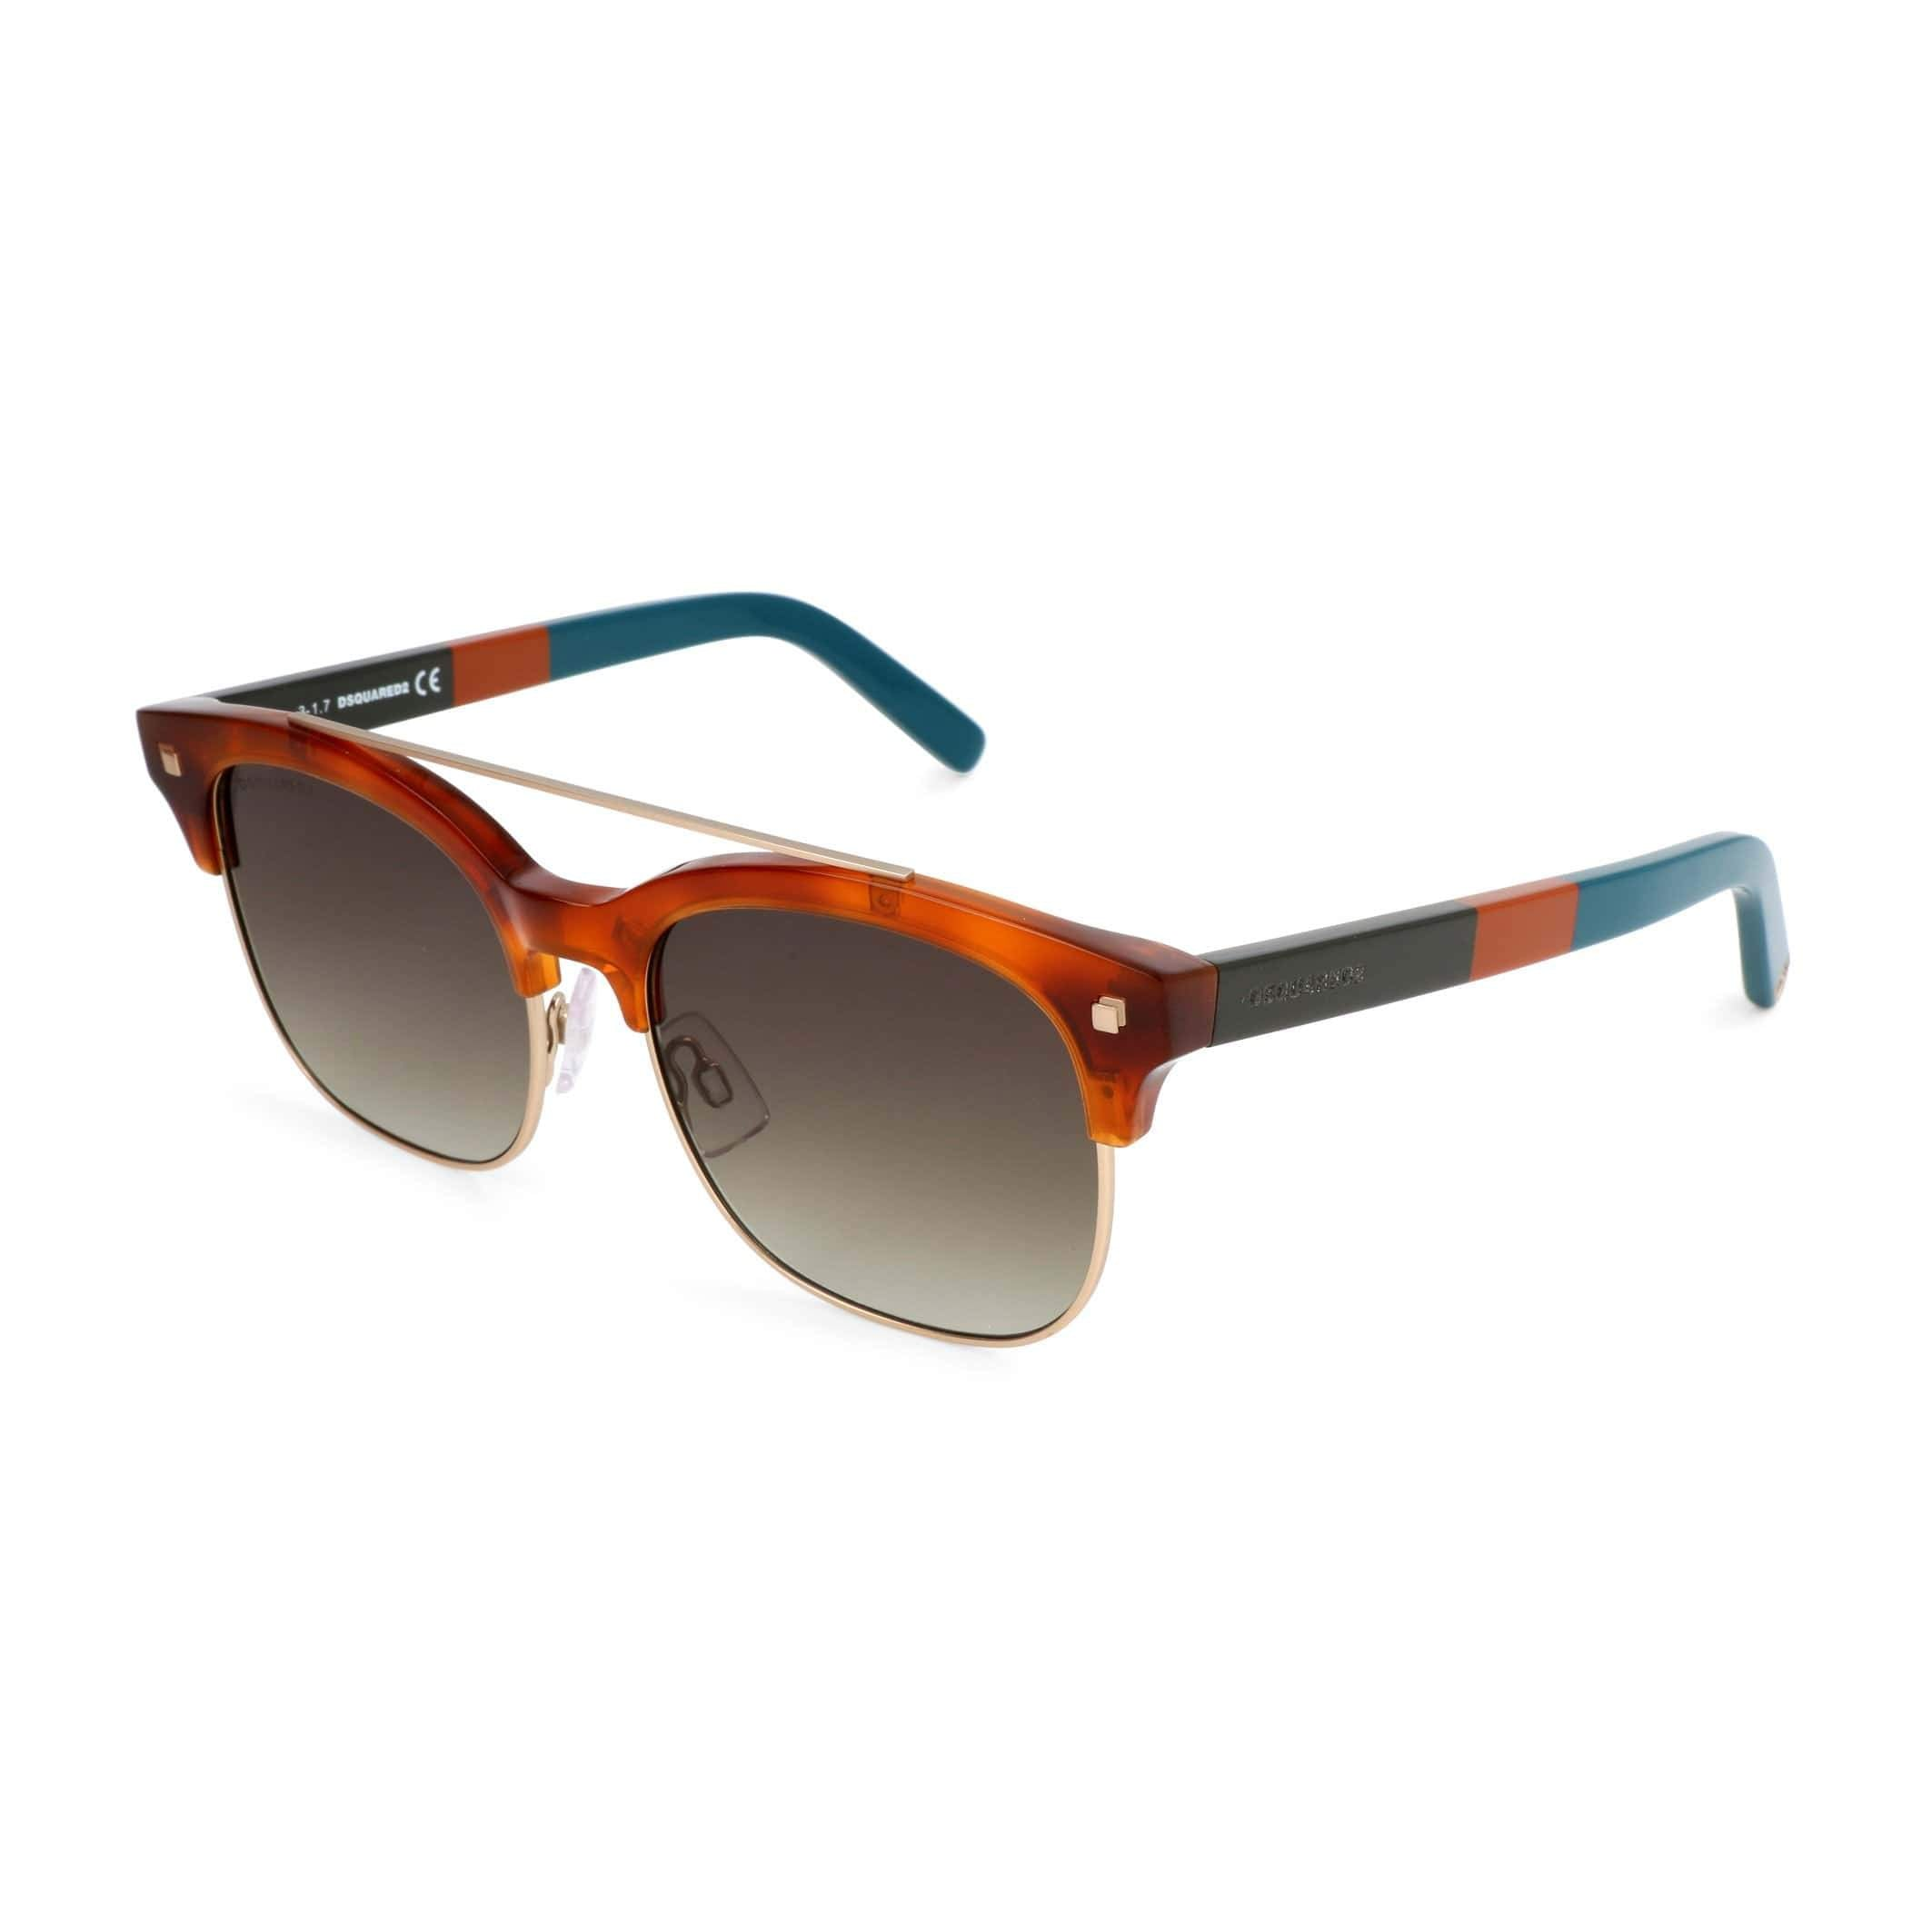 Dsquared2 Accessories Sunglasses brown / NOSIZE Dsquared2 - DQ0207